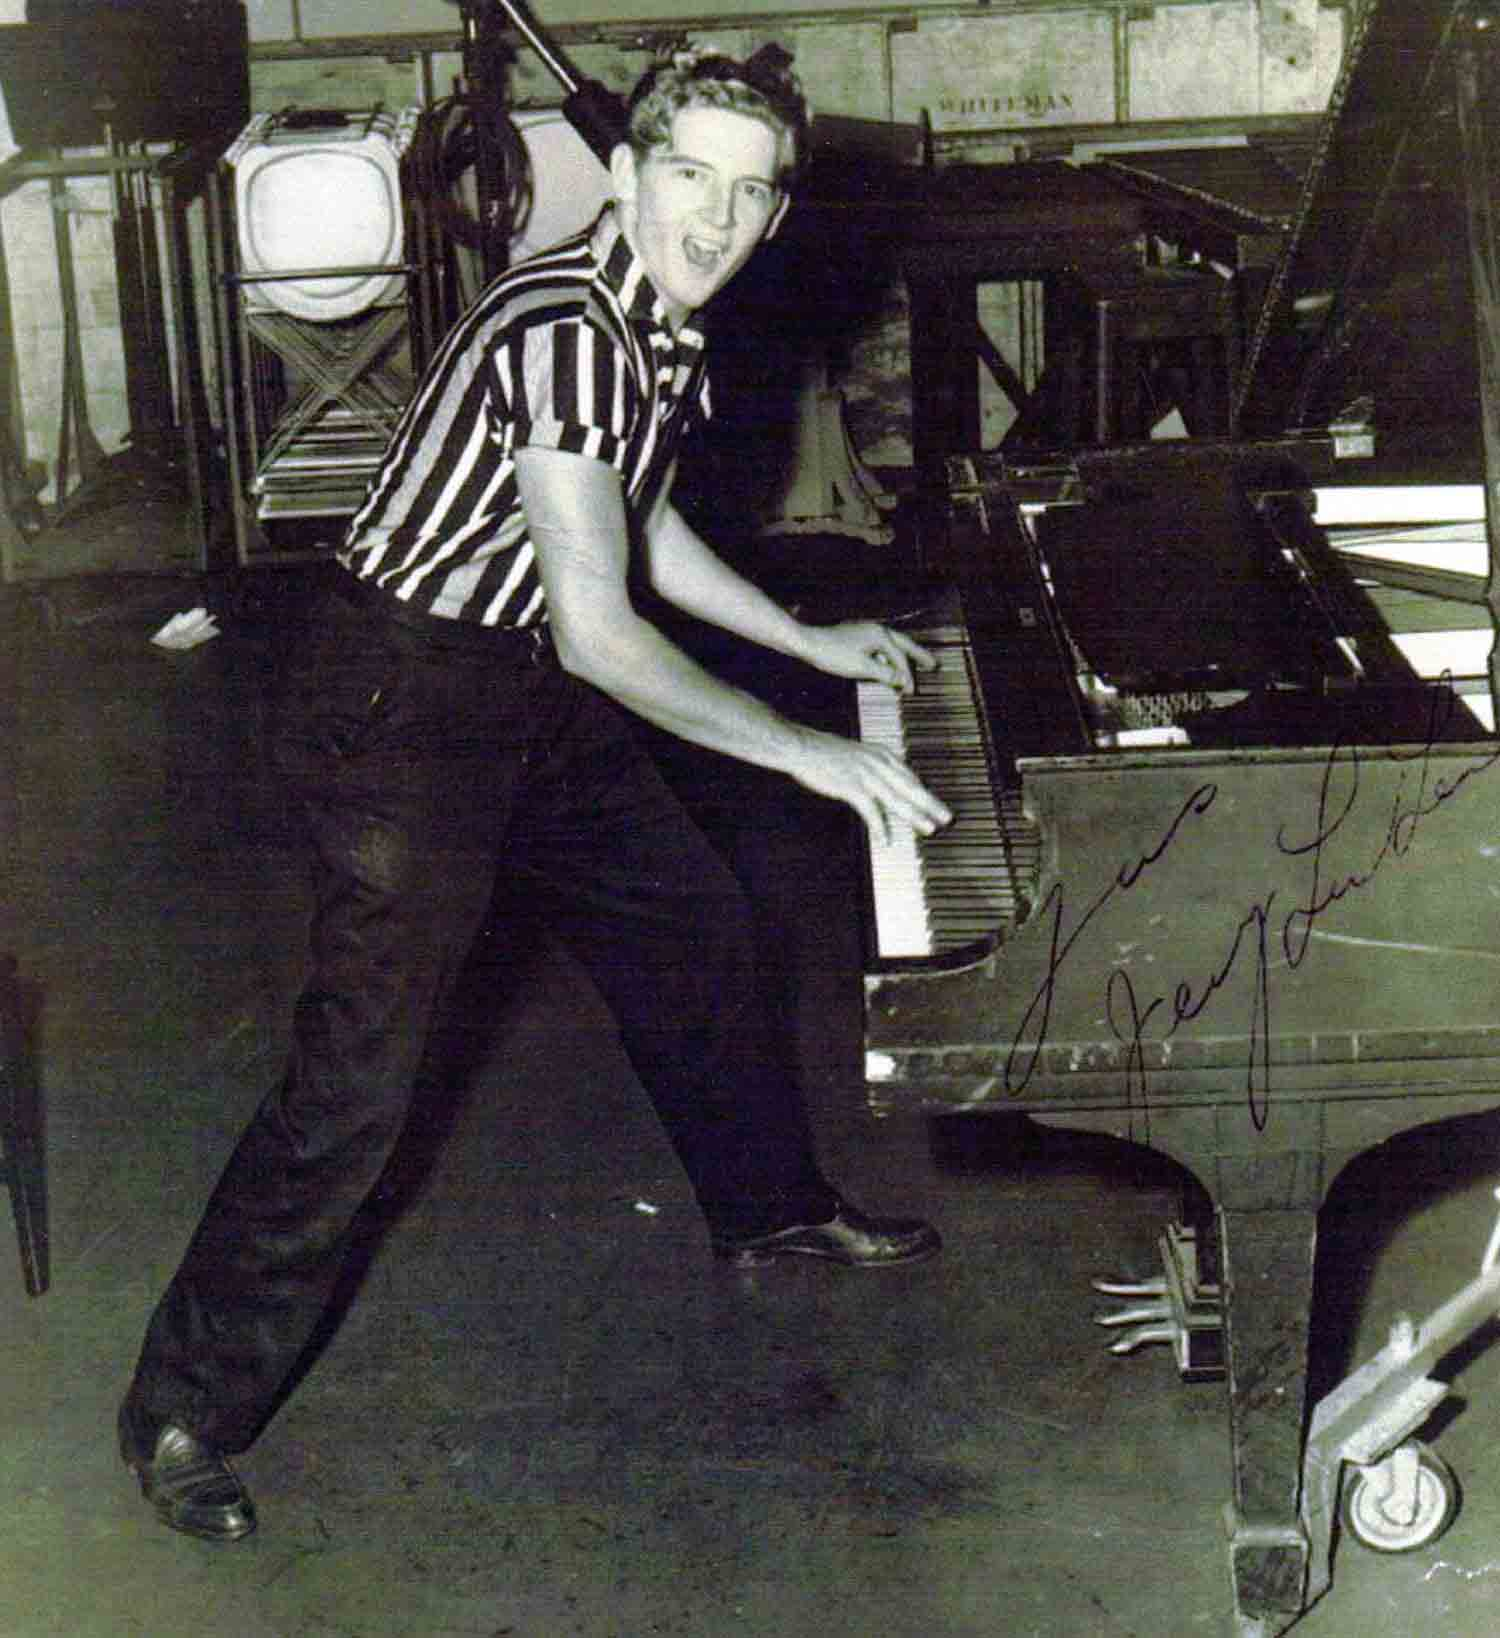 http://mikedennisnoir.com/wp-content/uploads/Jerry-Lee-Lewis.jpg